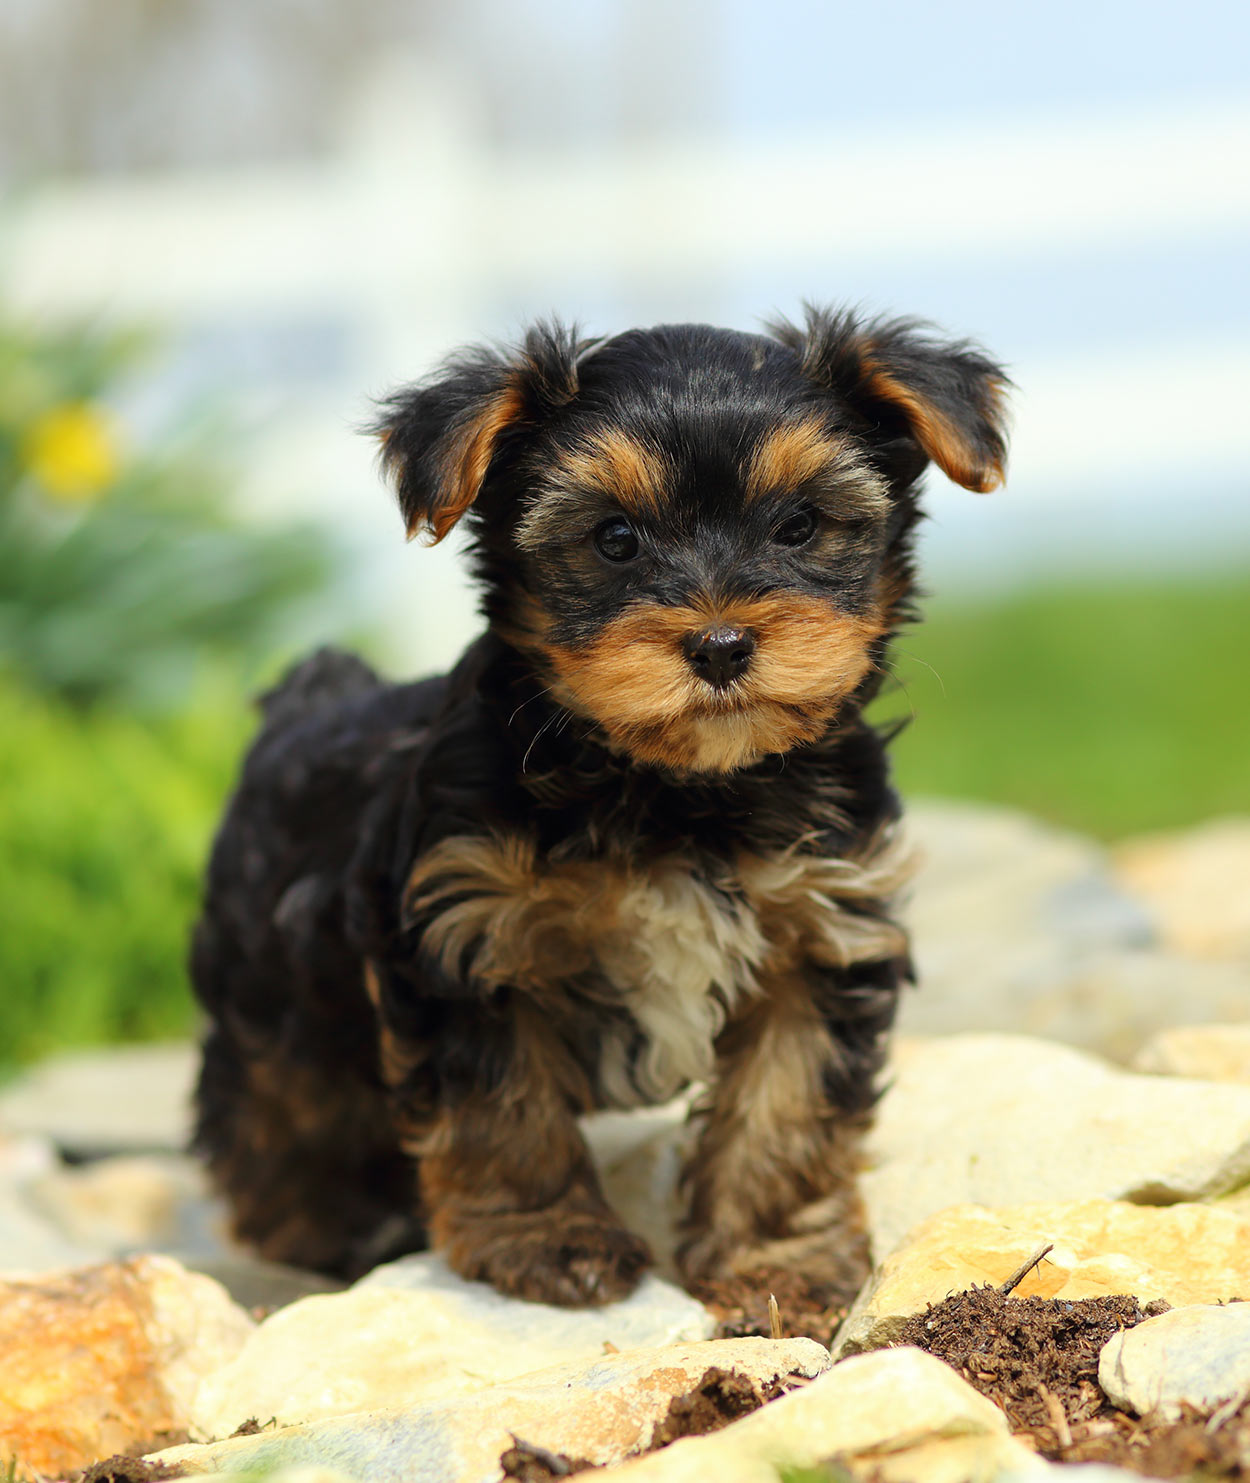 Second Smallest Dog Breed